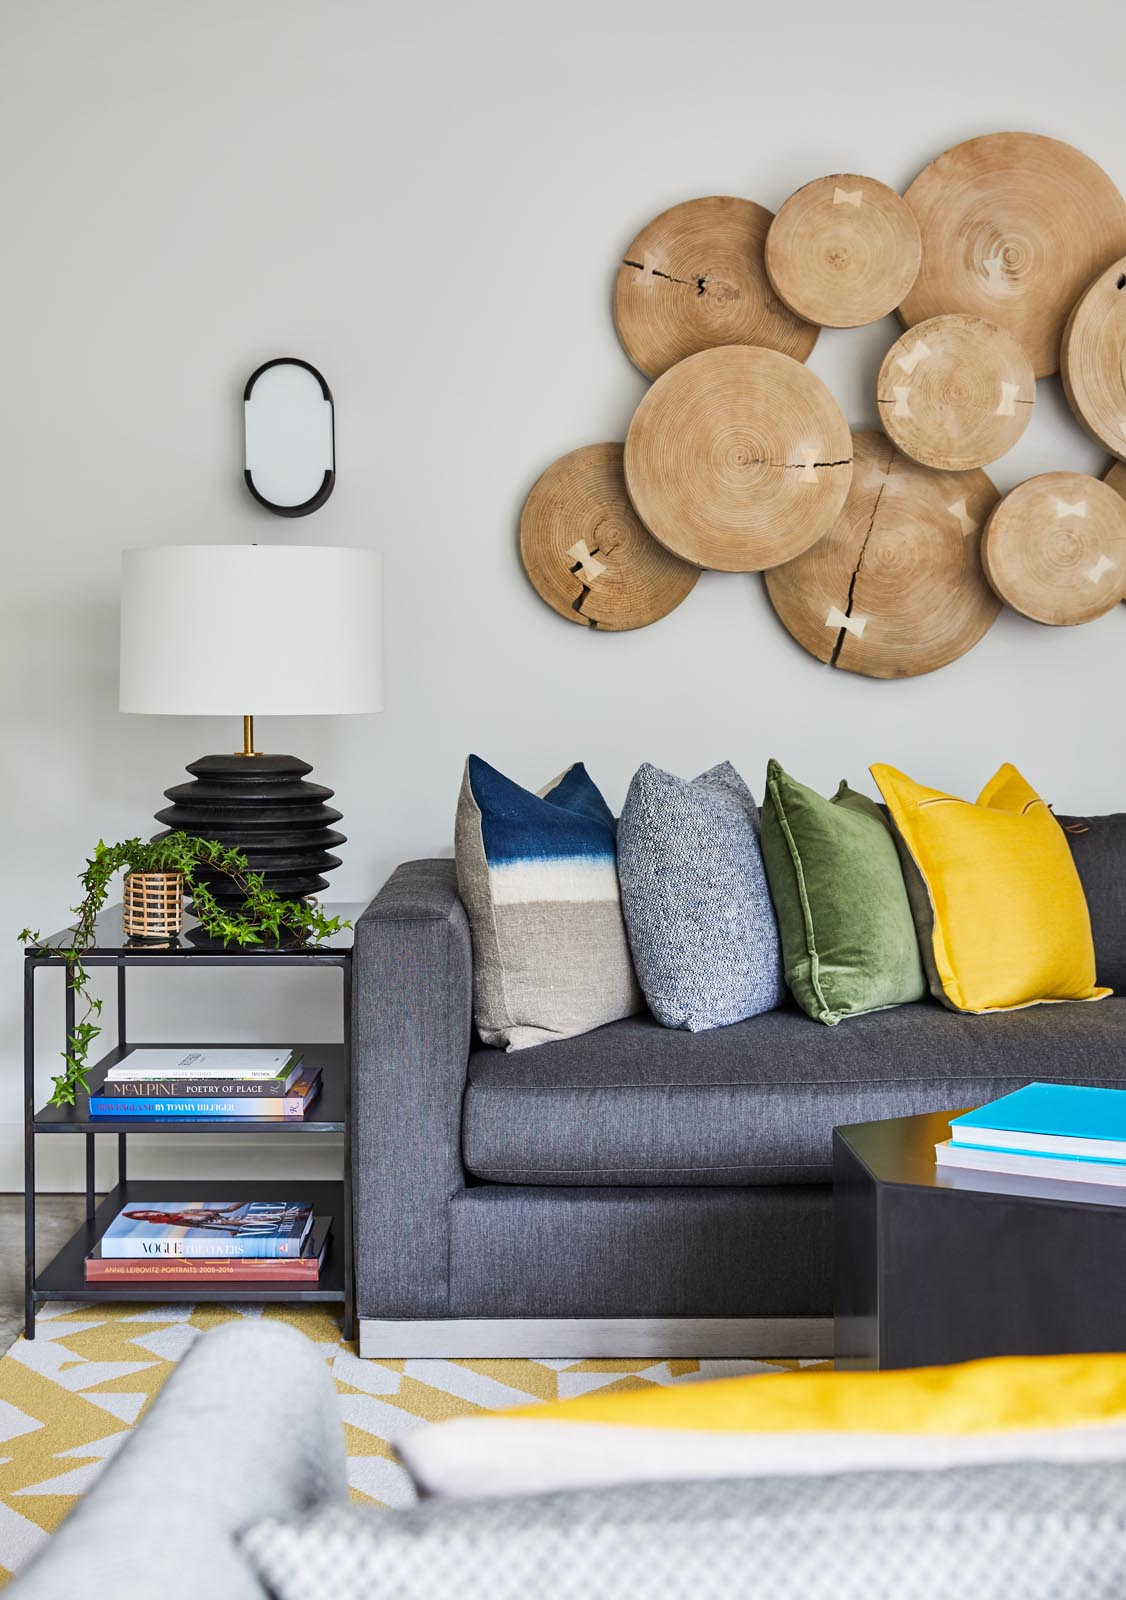 A modern media room with yellow accents, and a large wood art piece on the wall.